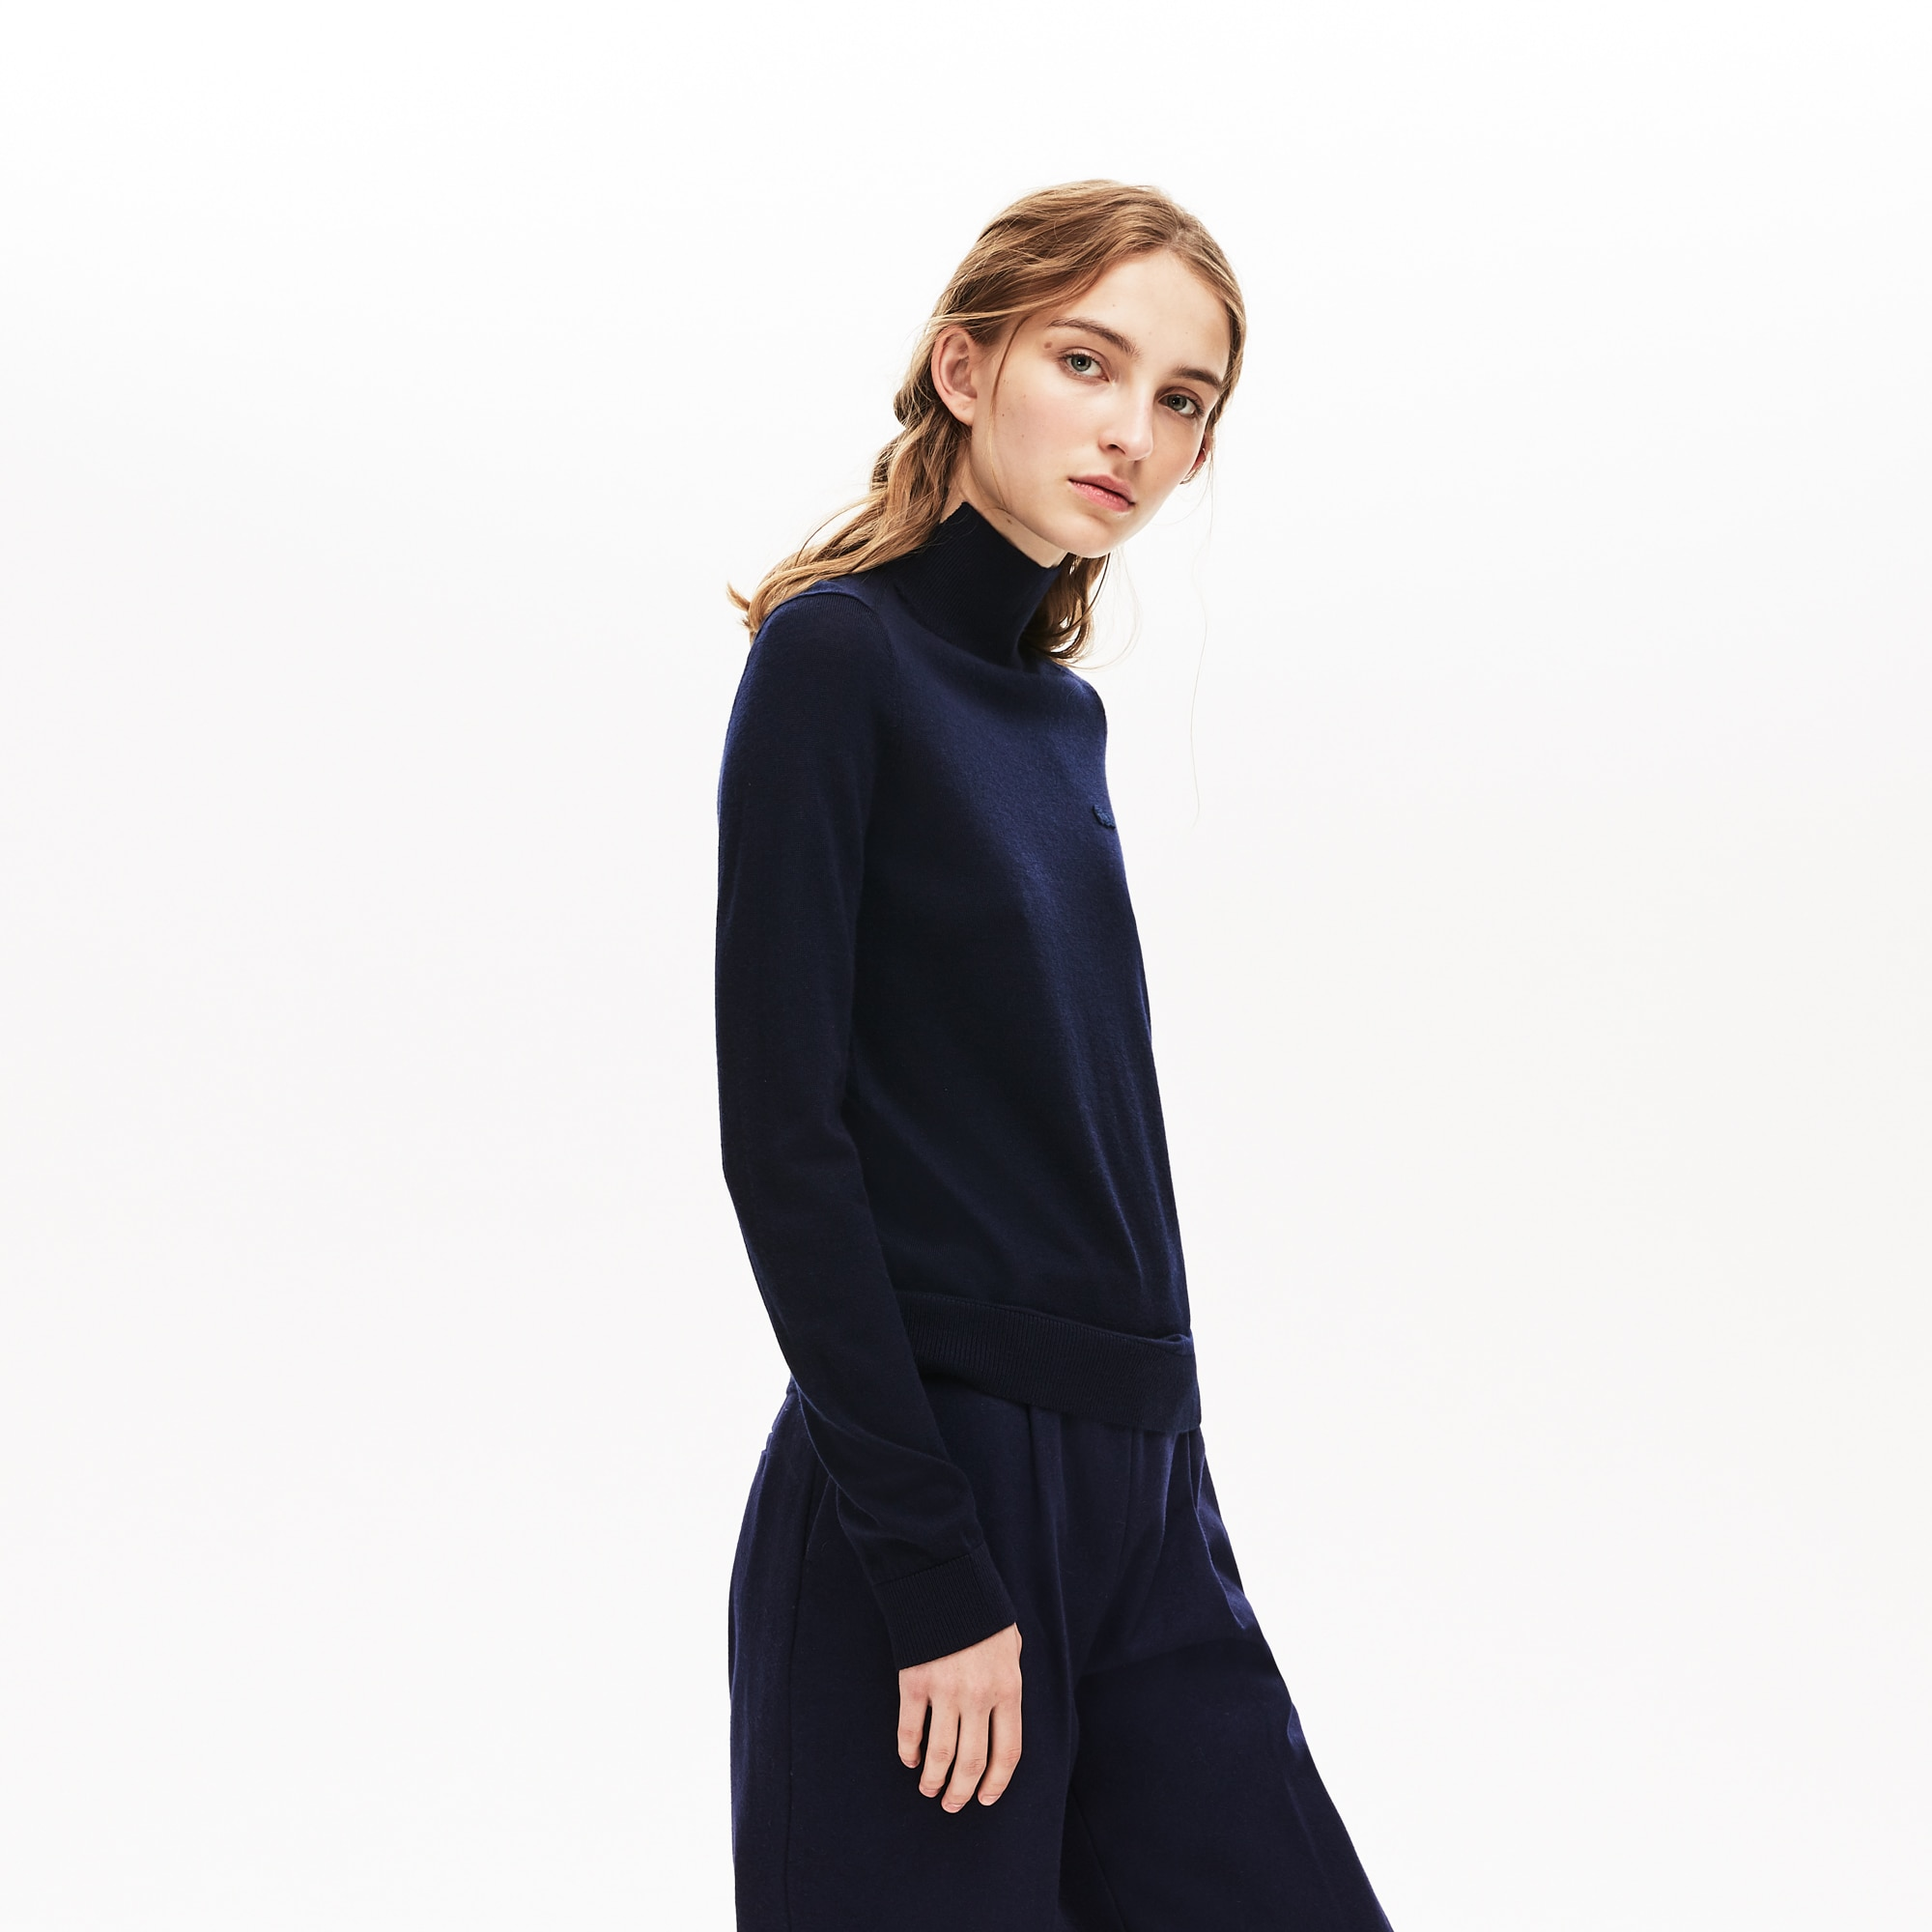 Women's Notched Turtleneck Wool Sweater